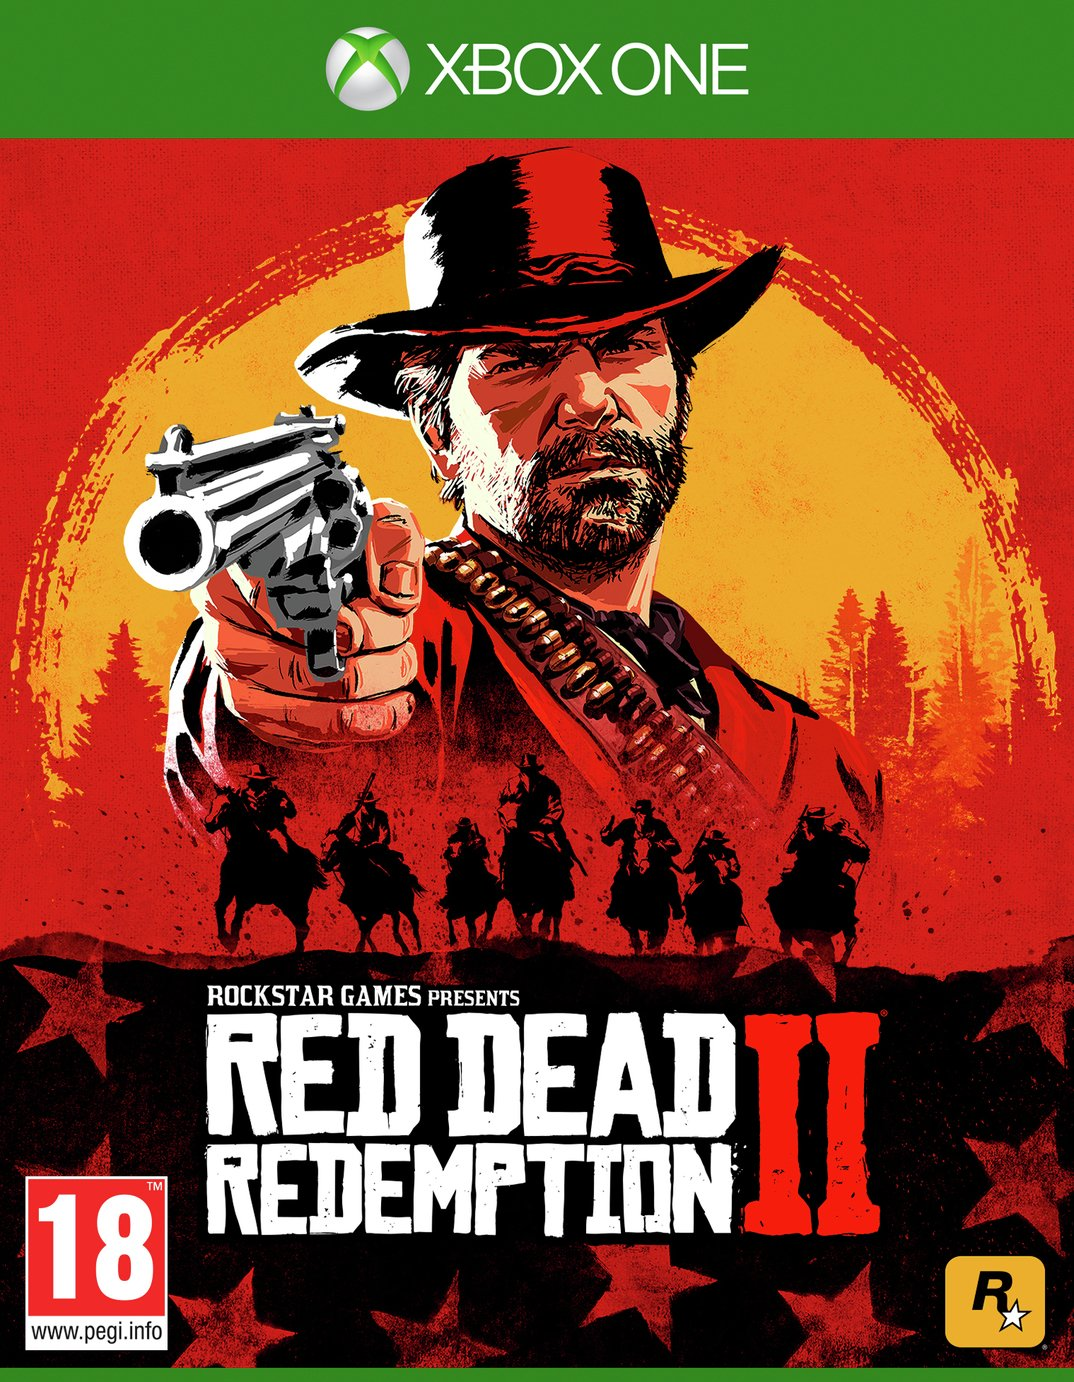 Red Dead Redemption 2 Xbox One Game from Rockstar Games